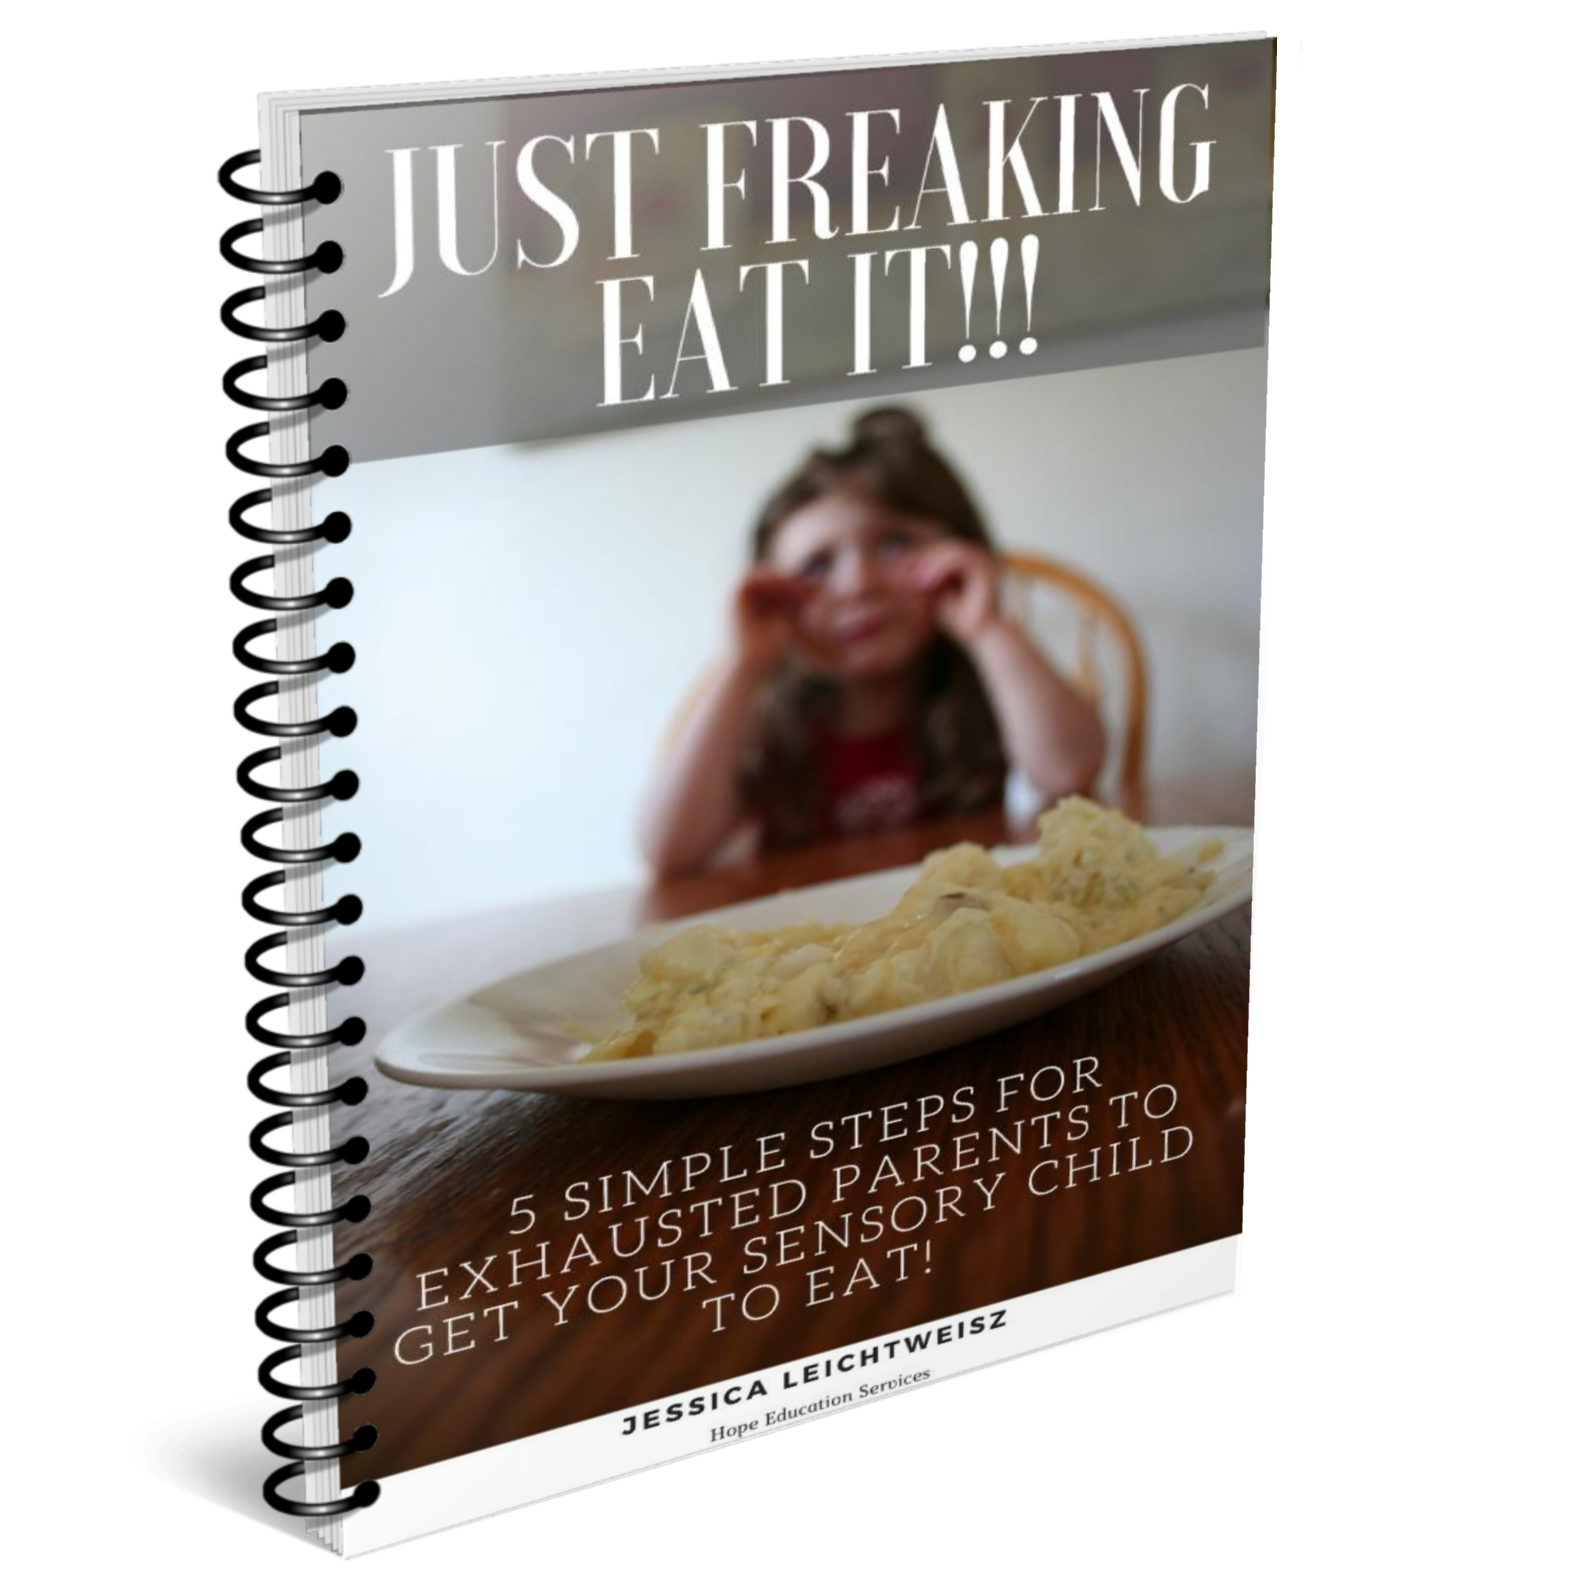 Just Freaking Eat It: 5 Steps for Exhausted Parents to Get Your Sensory Child to Eat!